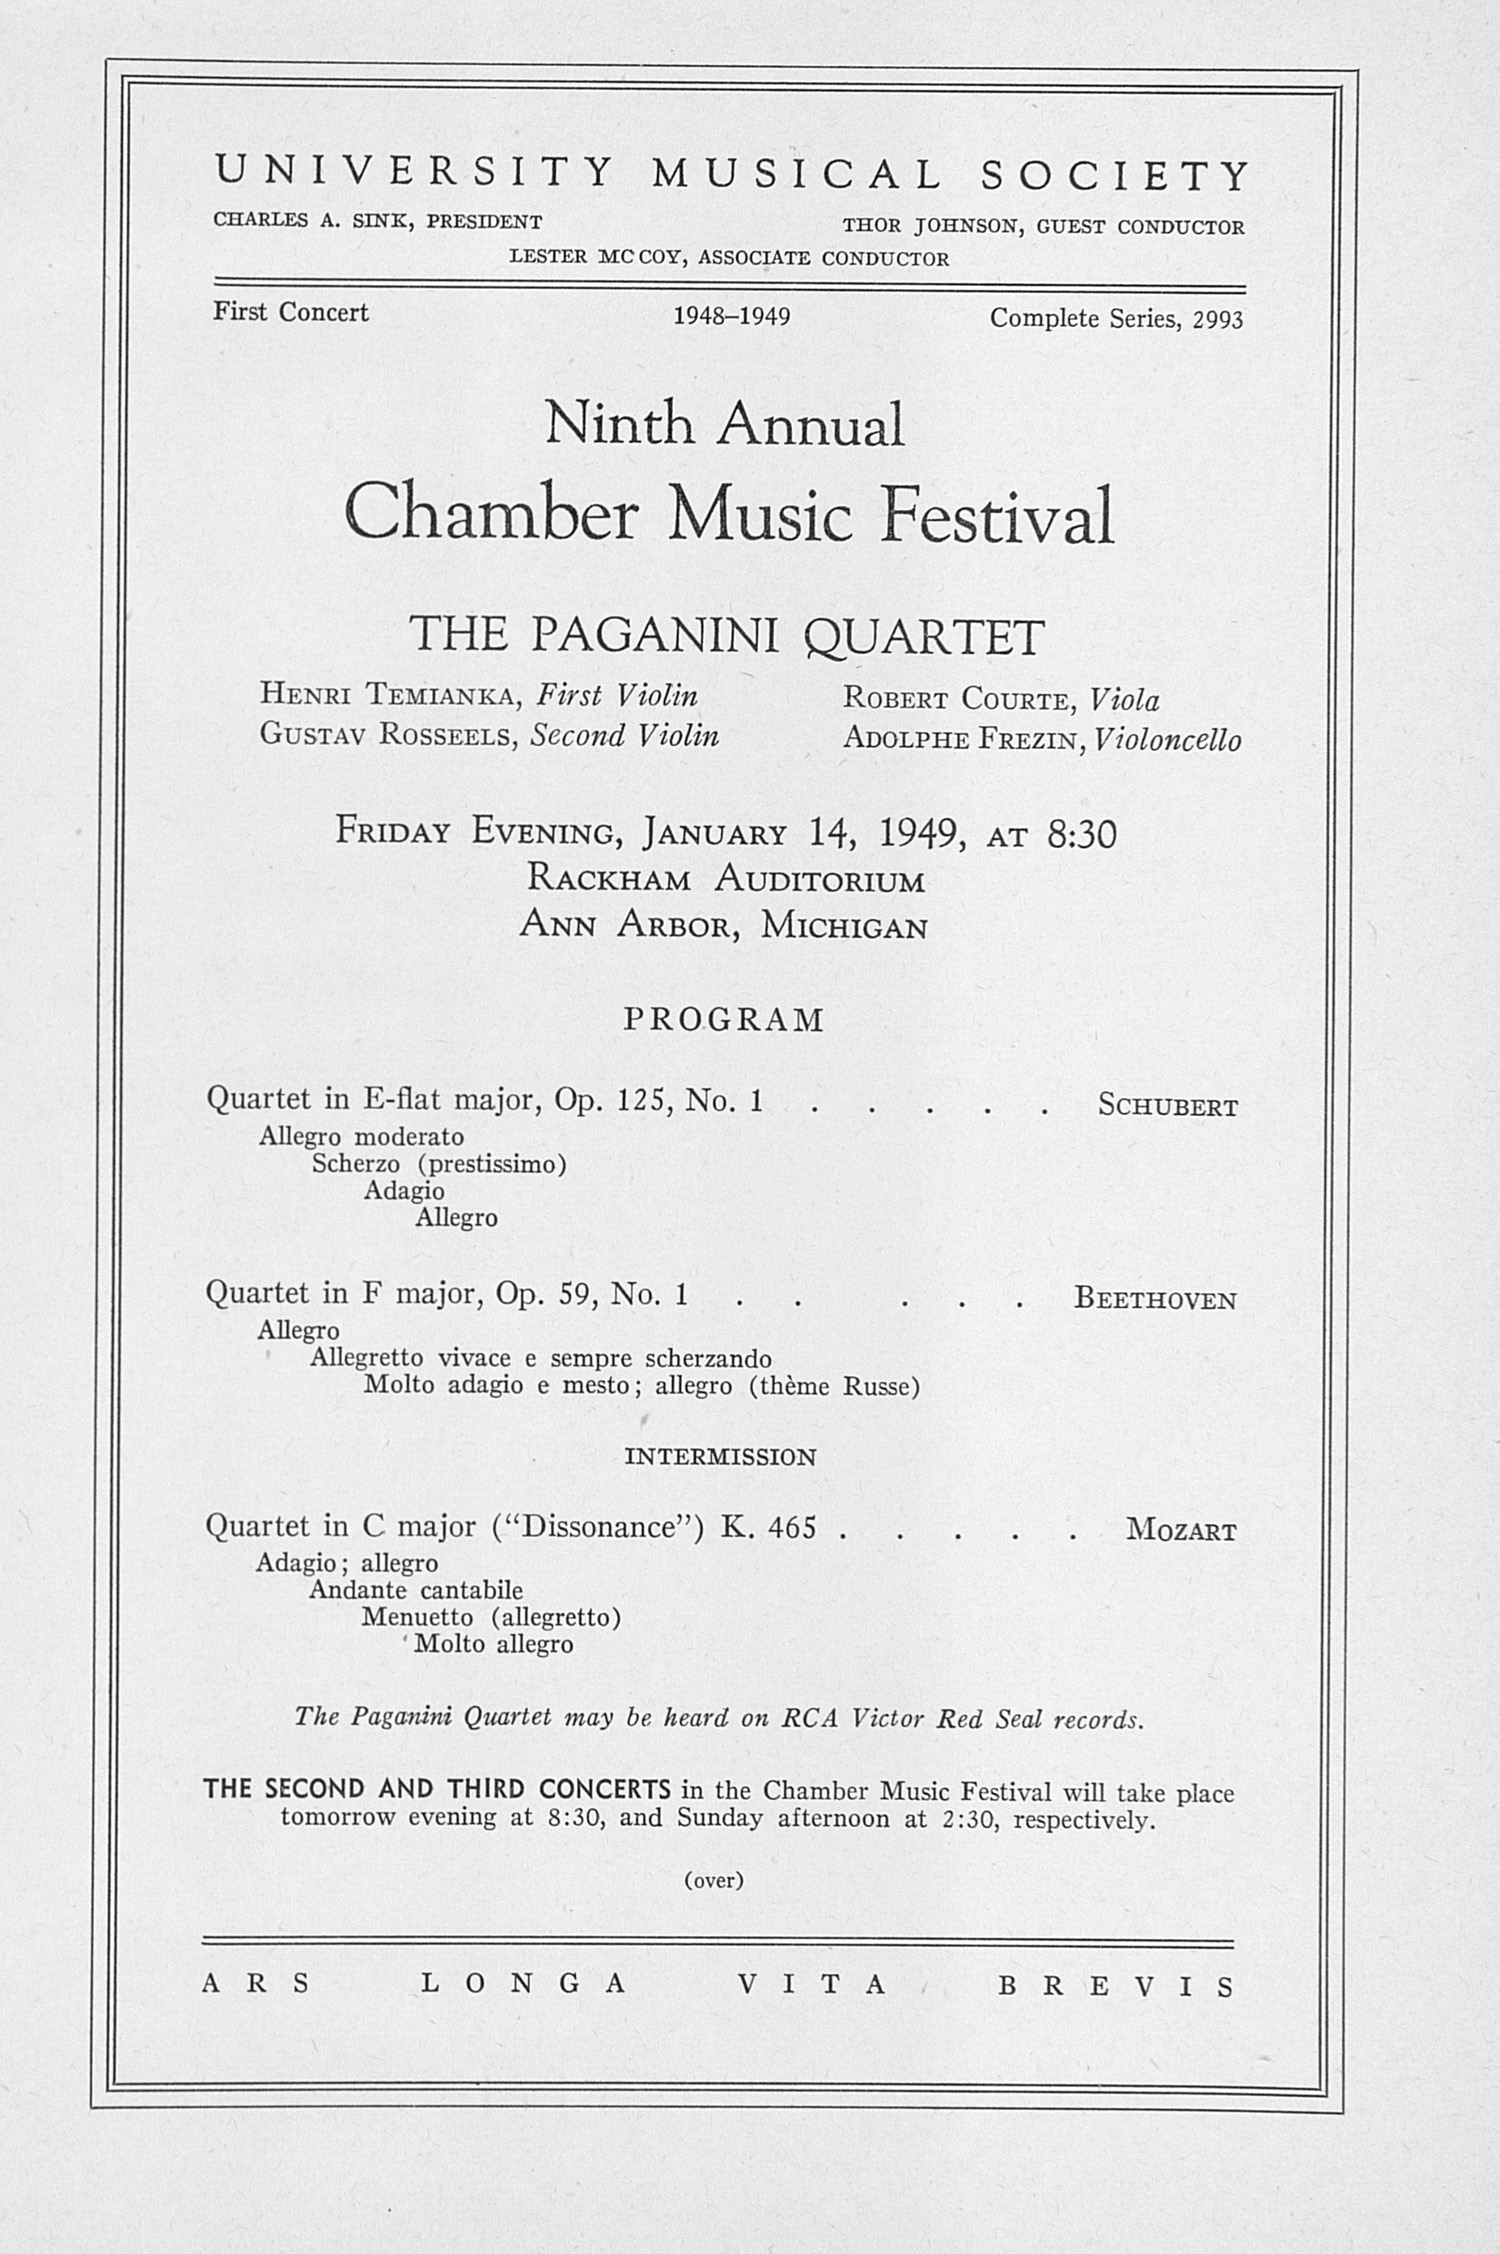 UMS Concert Program, January 14, 1949: Ninth Annual Chamber Music Festival -- The Paganini Quartet image